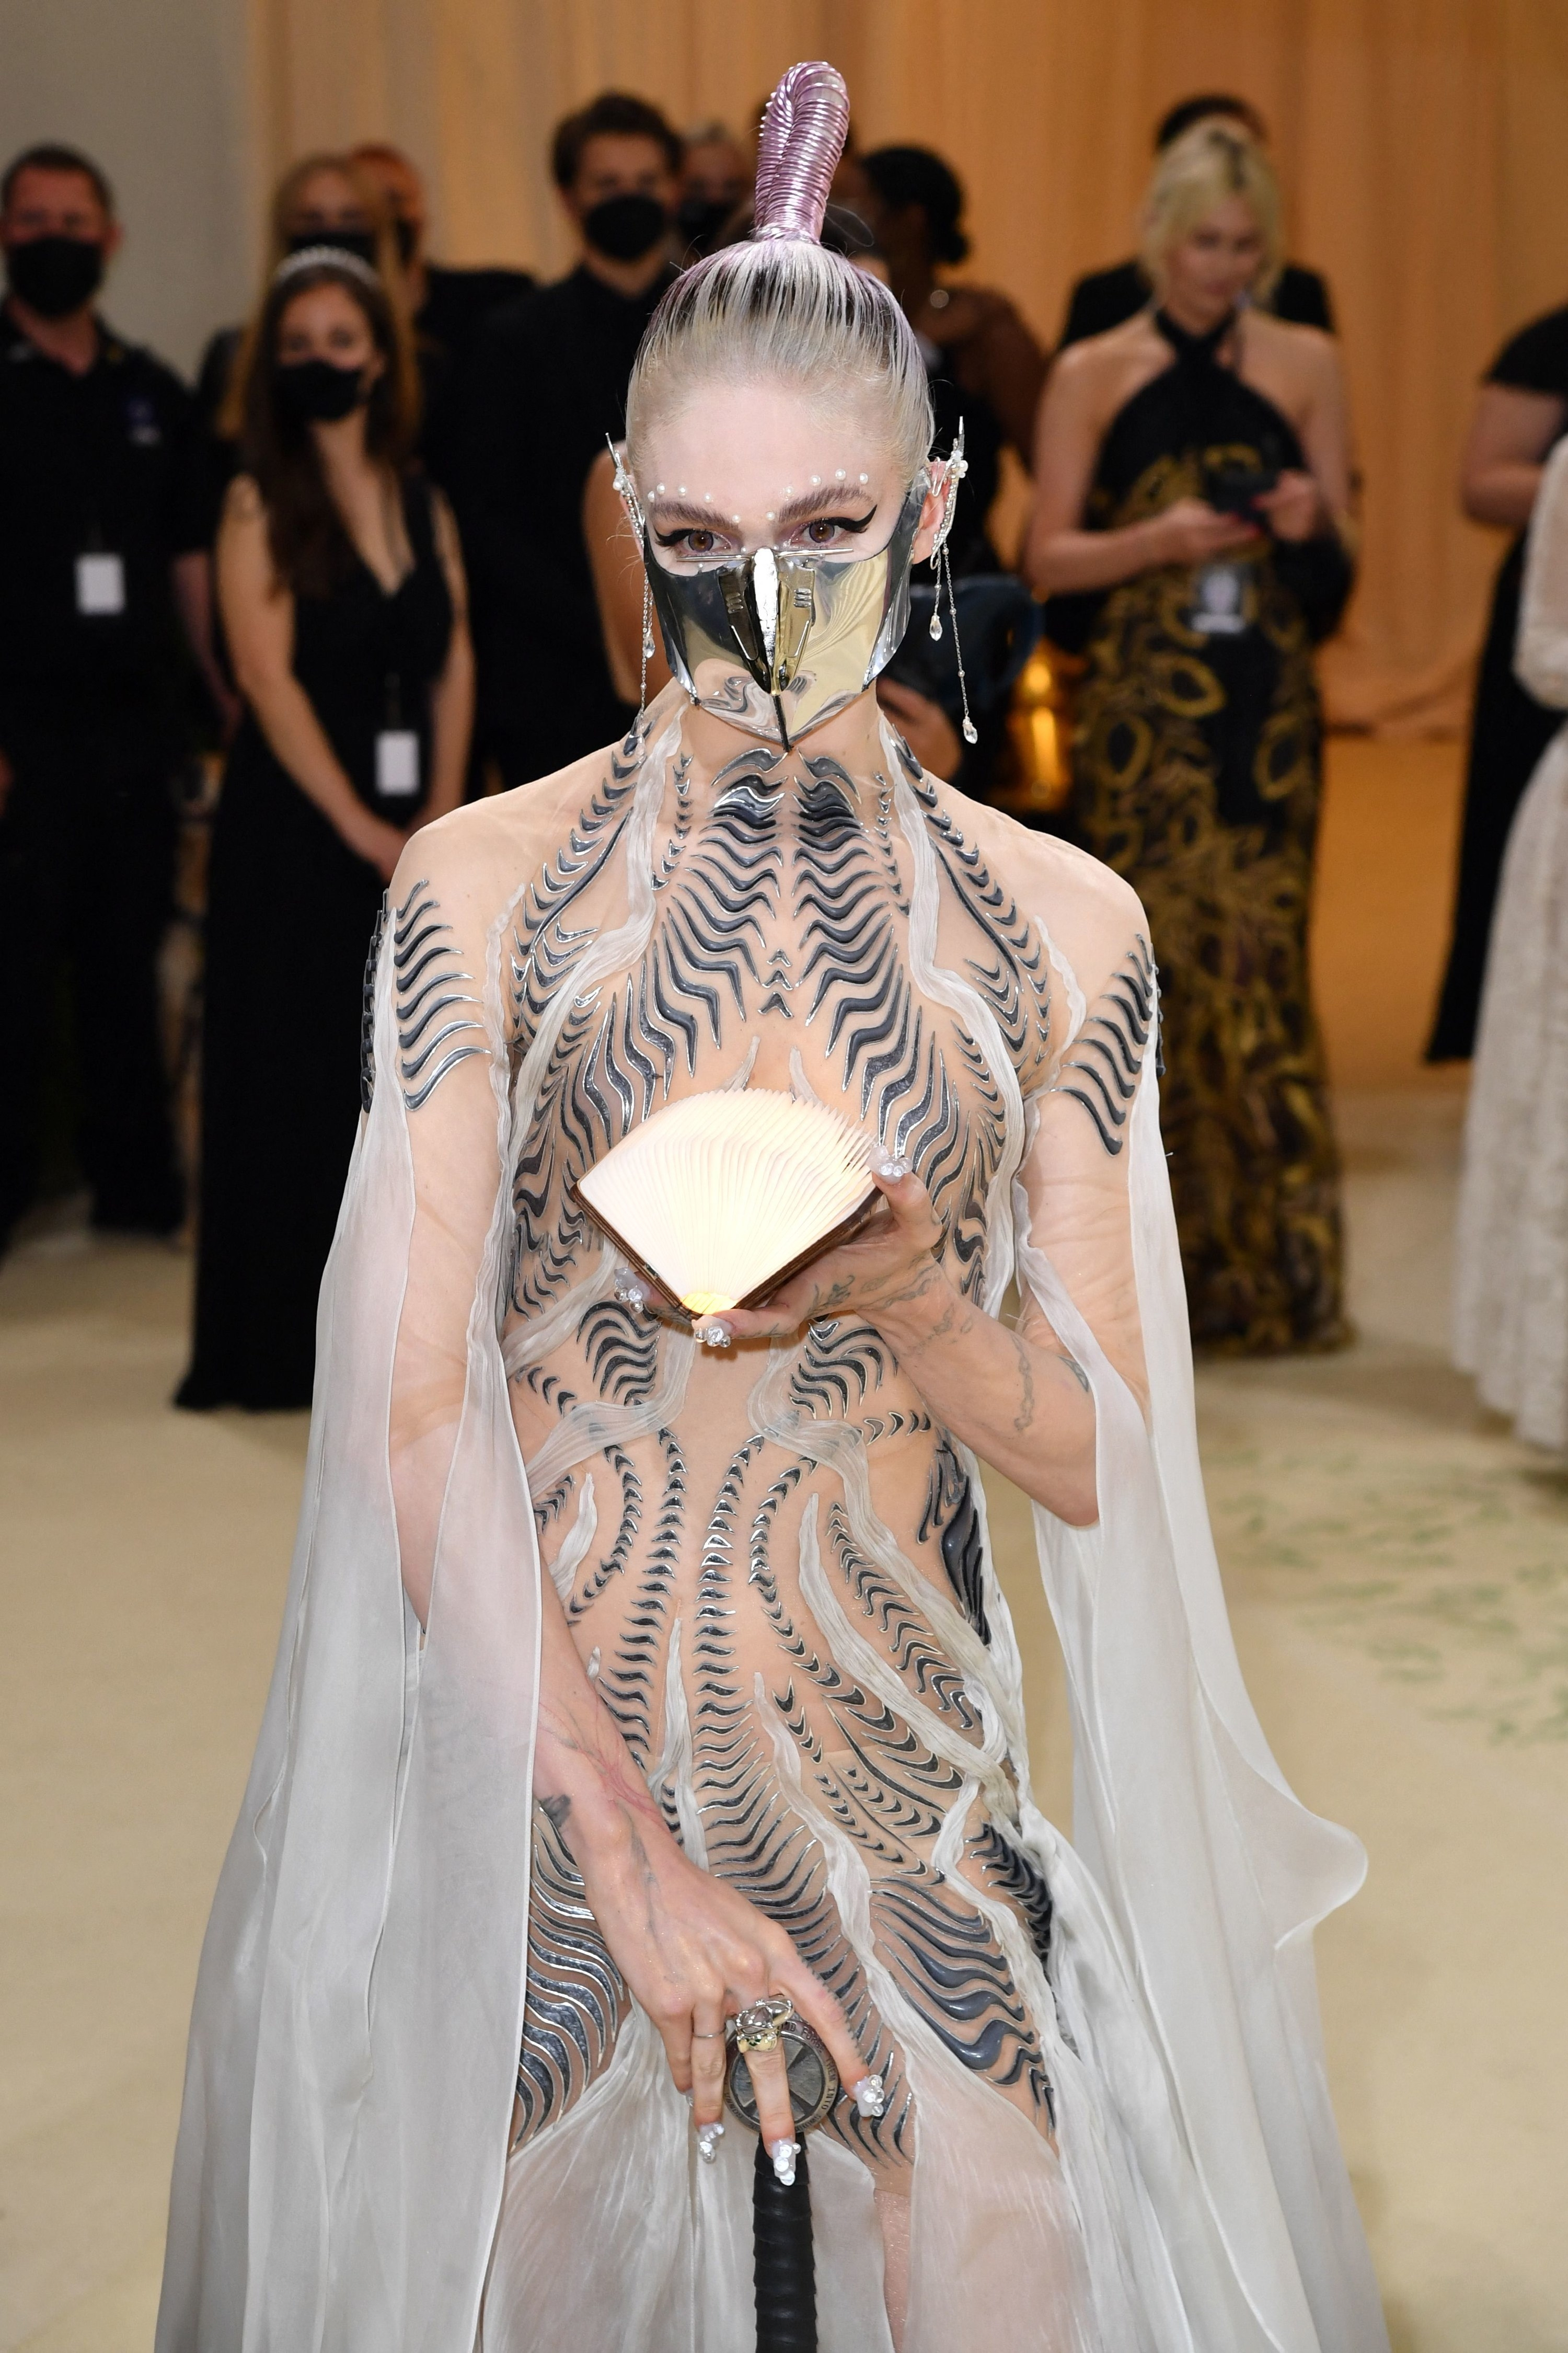 Grimes holds an open book on the carpet